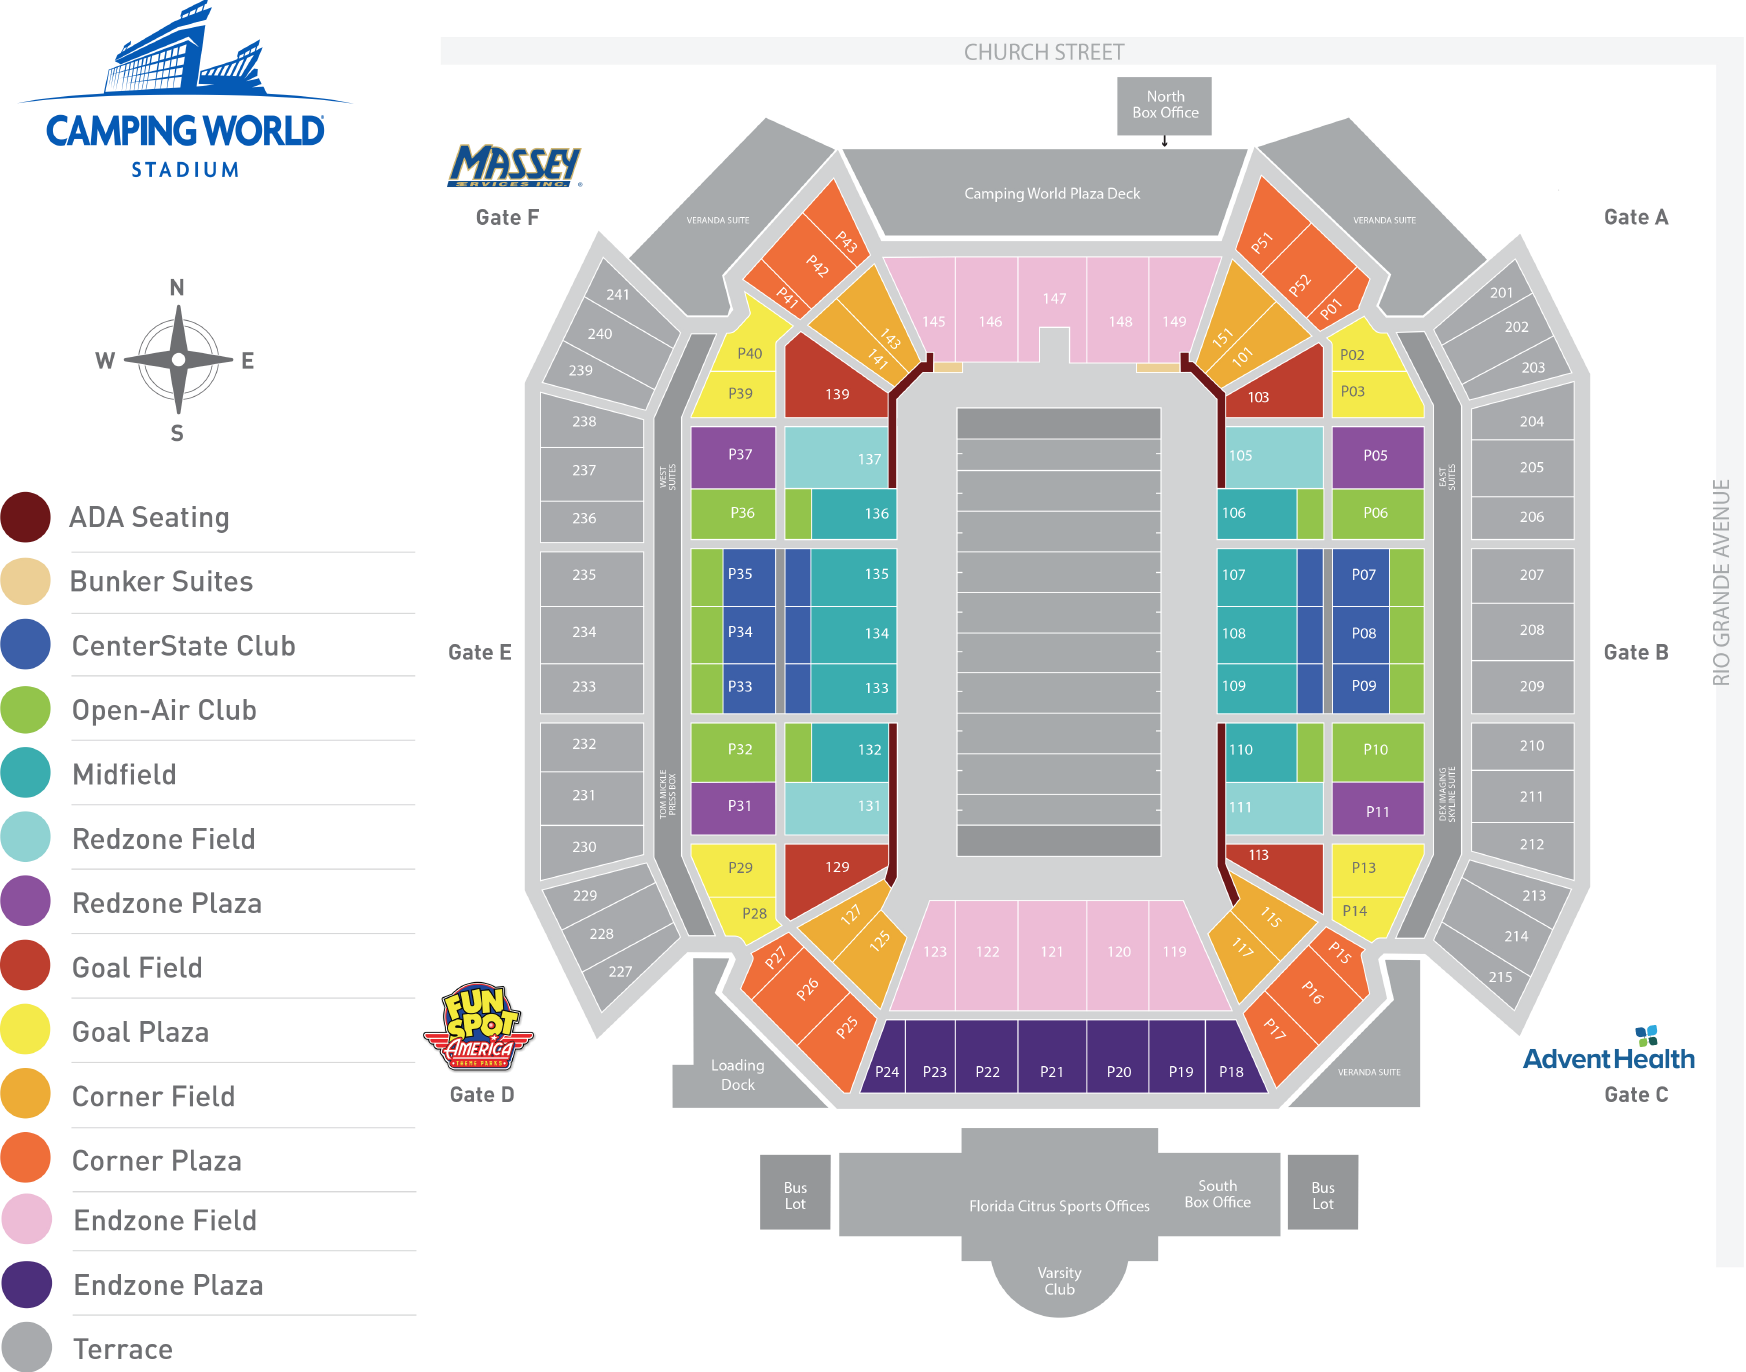 Football Seating Map Oct 2019.png